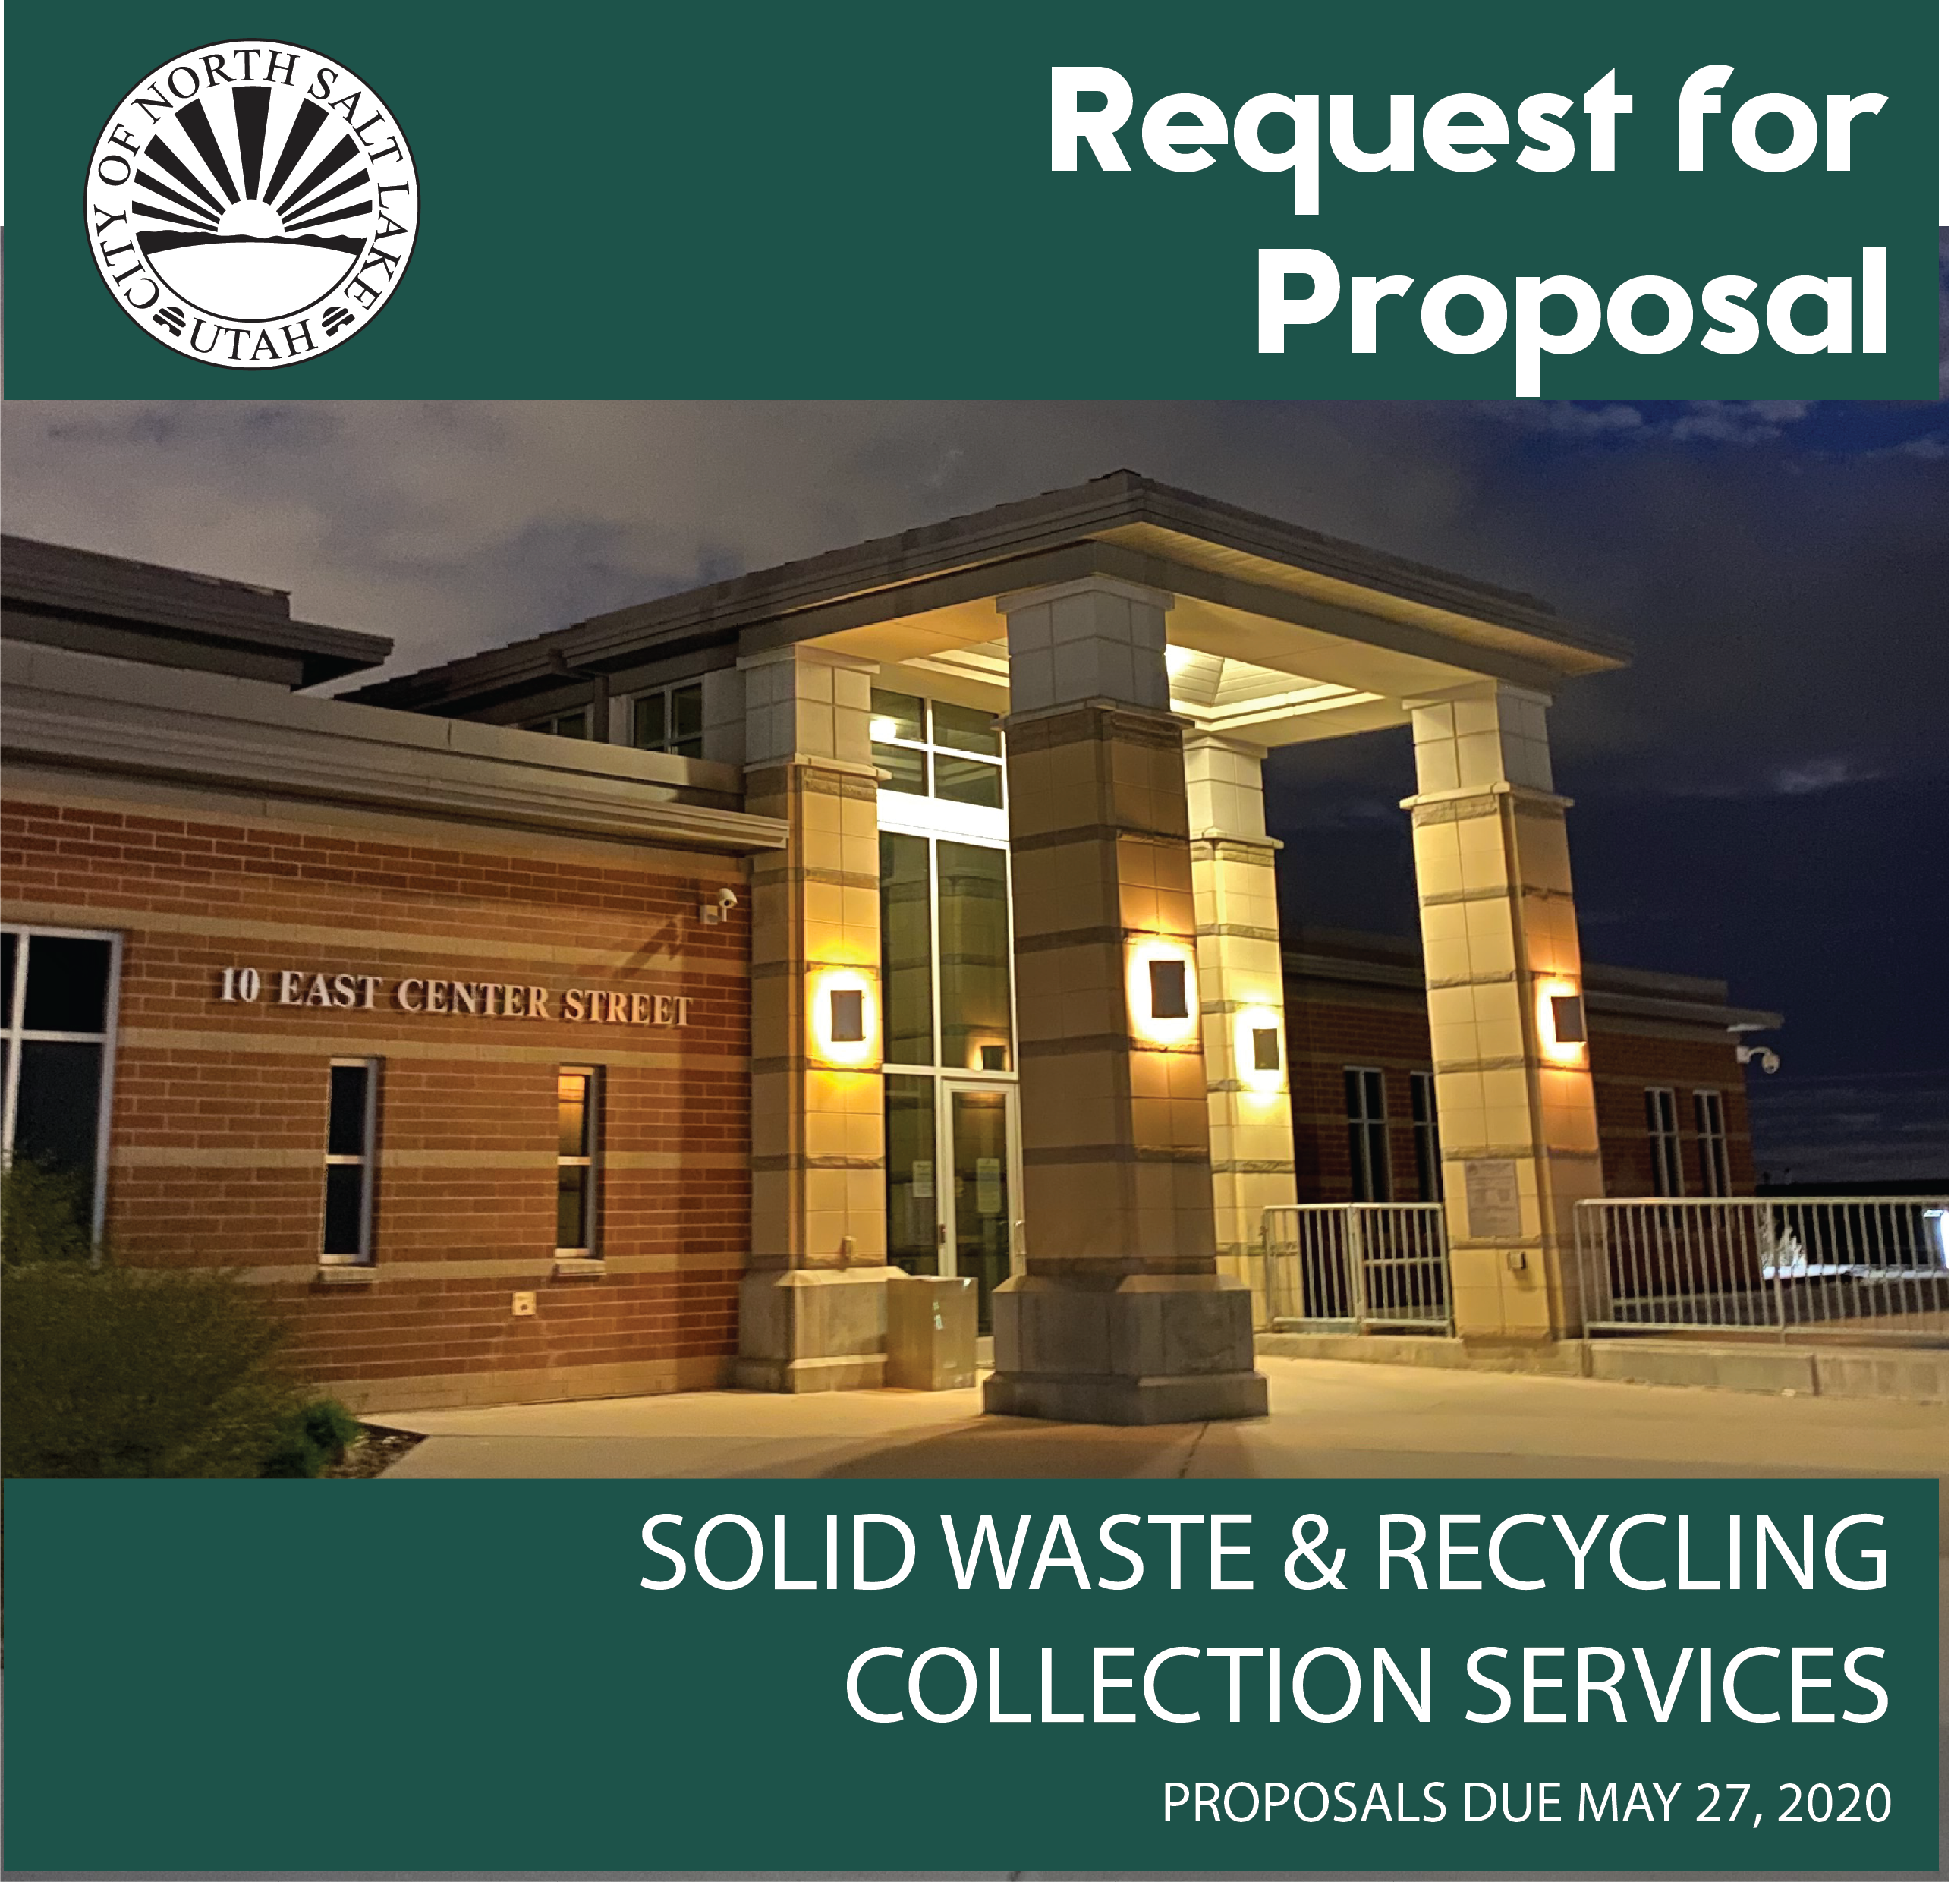 NSL RFP Request for Proposal Solid Waste 5.11.20